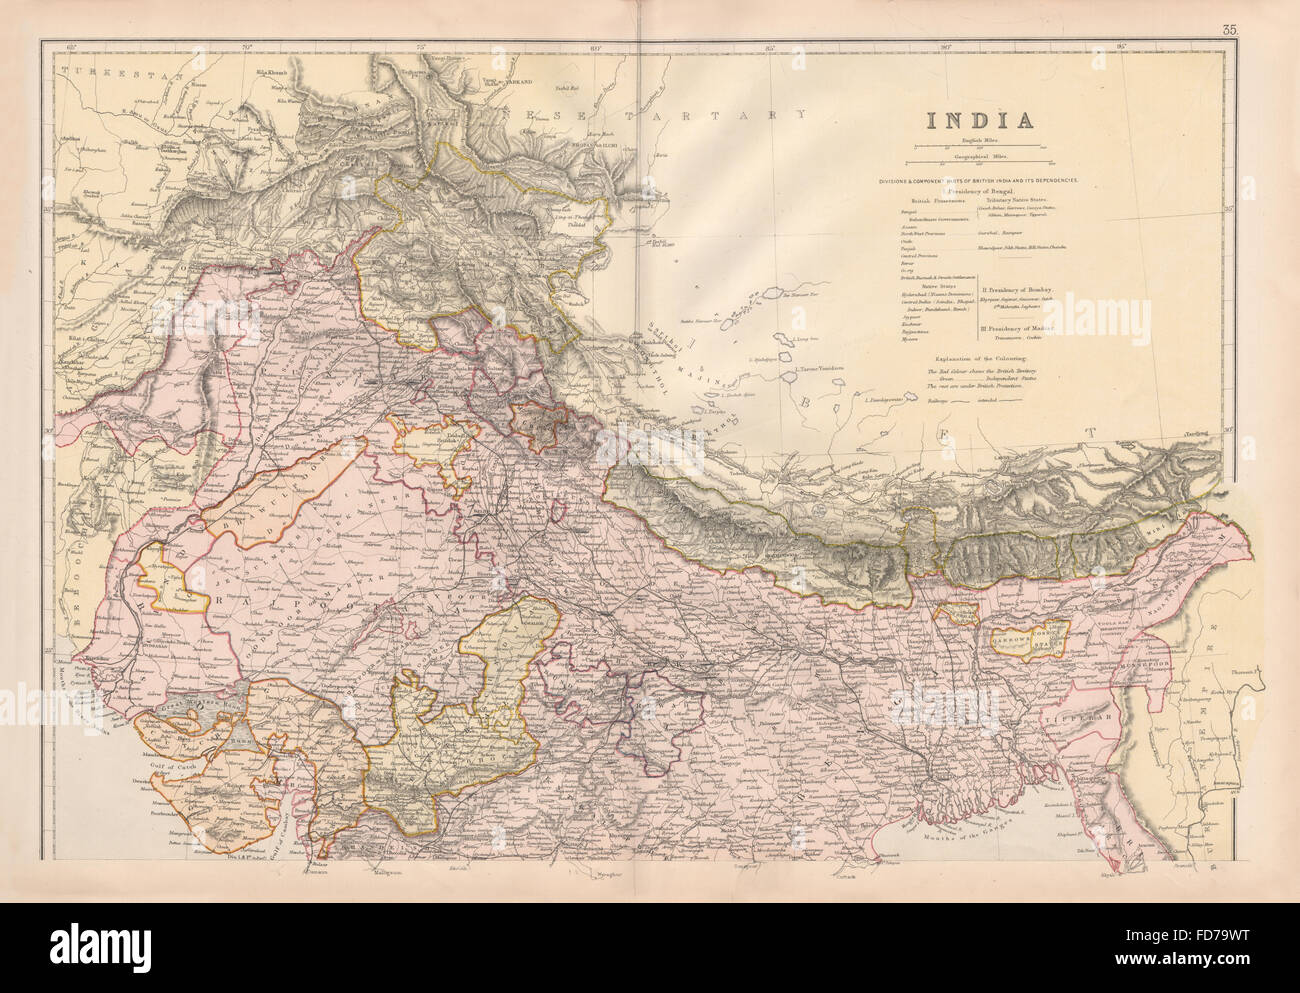 North india maps stock photos north india maps stock images alamy british india north shows railways actual planneddependent states 1882 map stock gumiabroncs Image collections